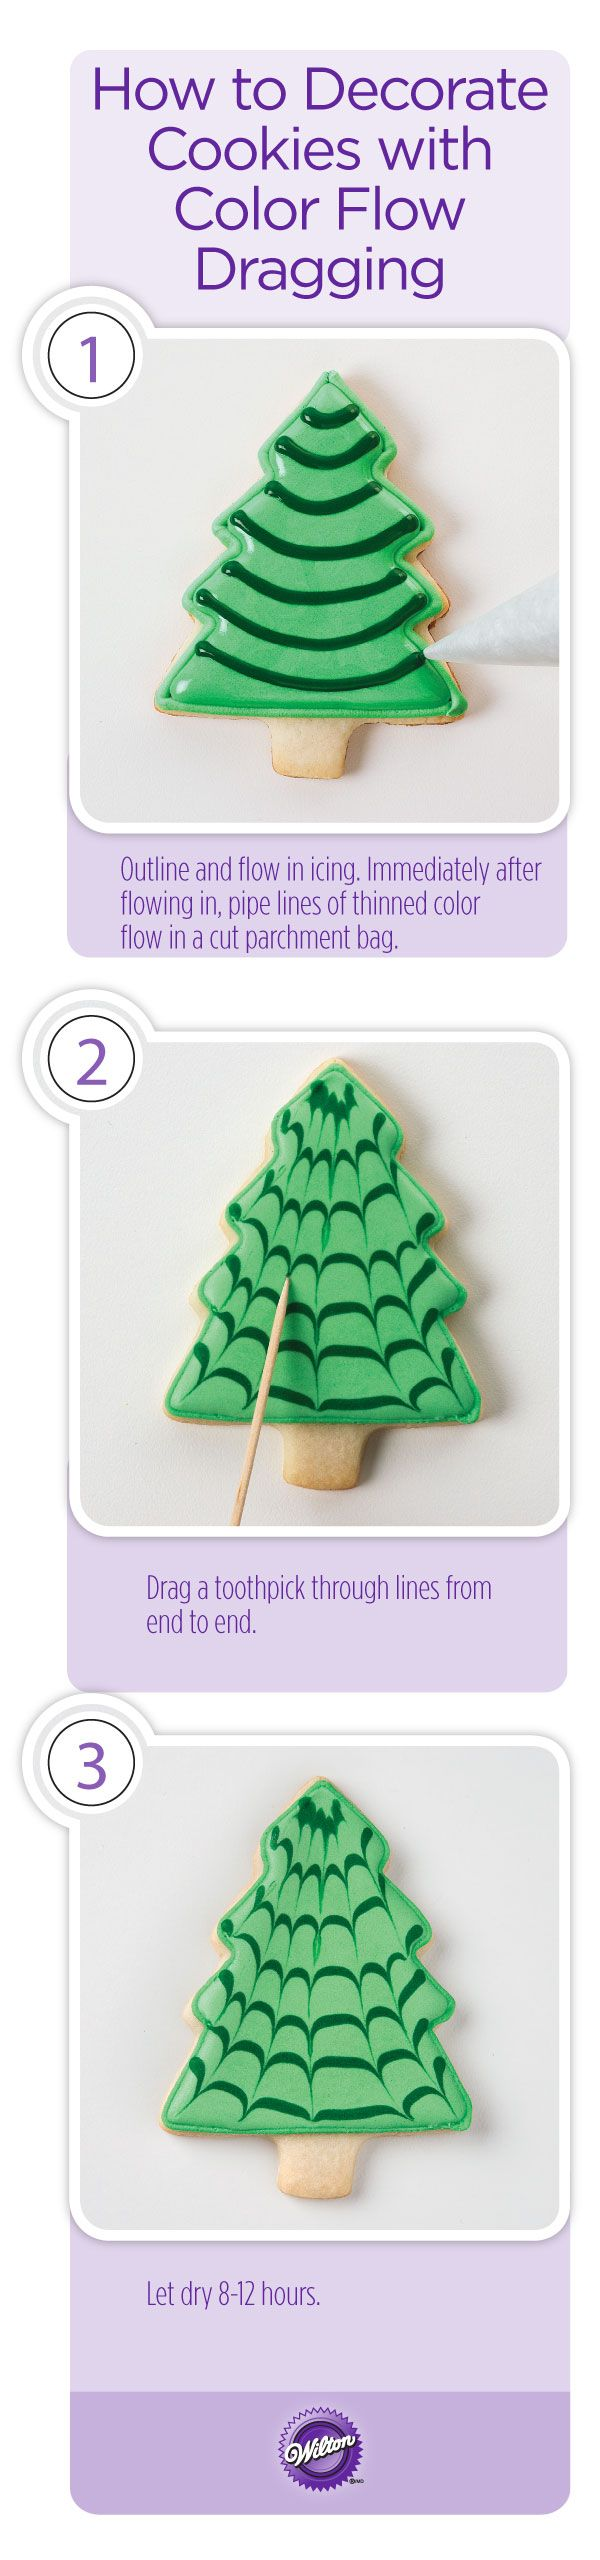 How to add detail and interest to decorated color flow cookies while still maintaining the smooth, sophisticated look.